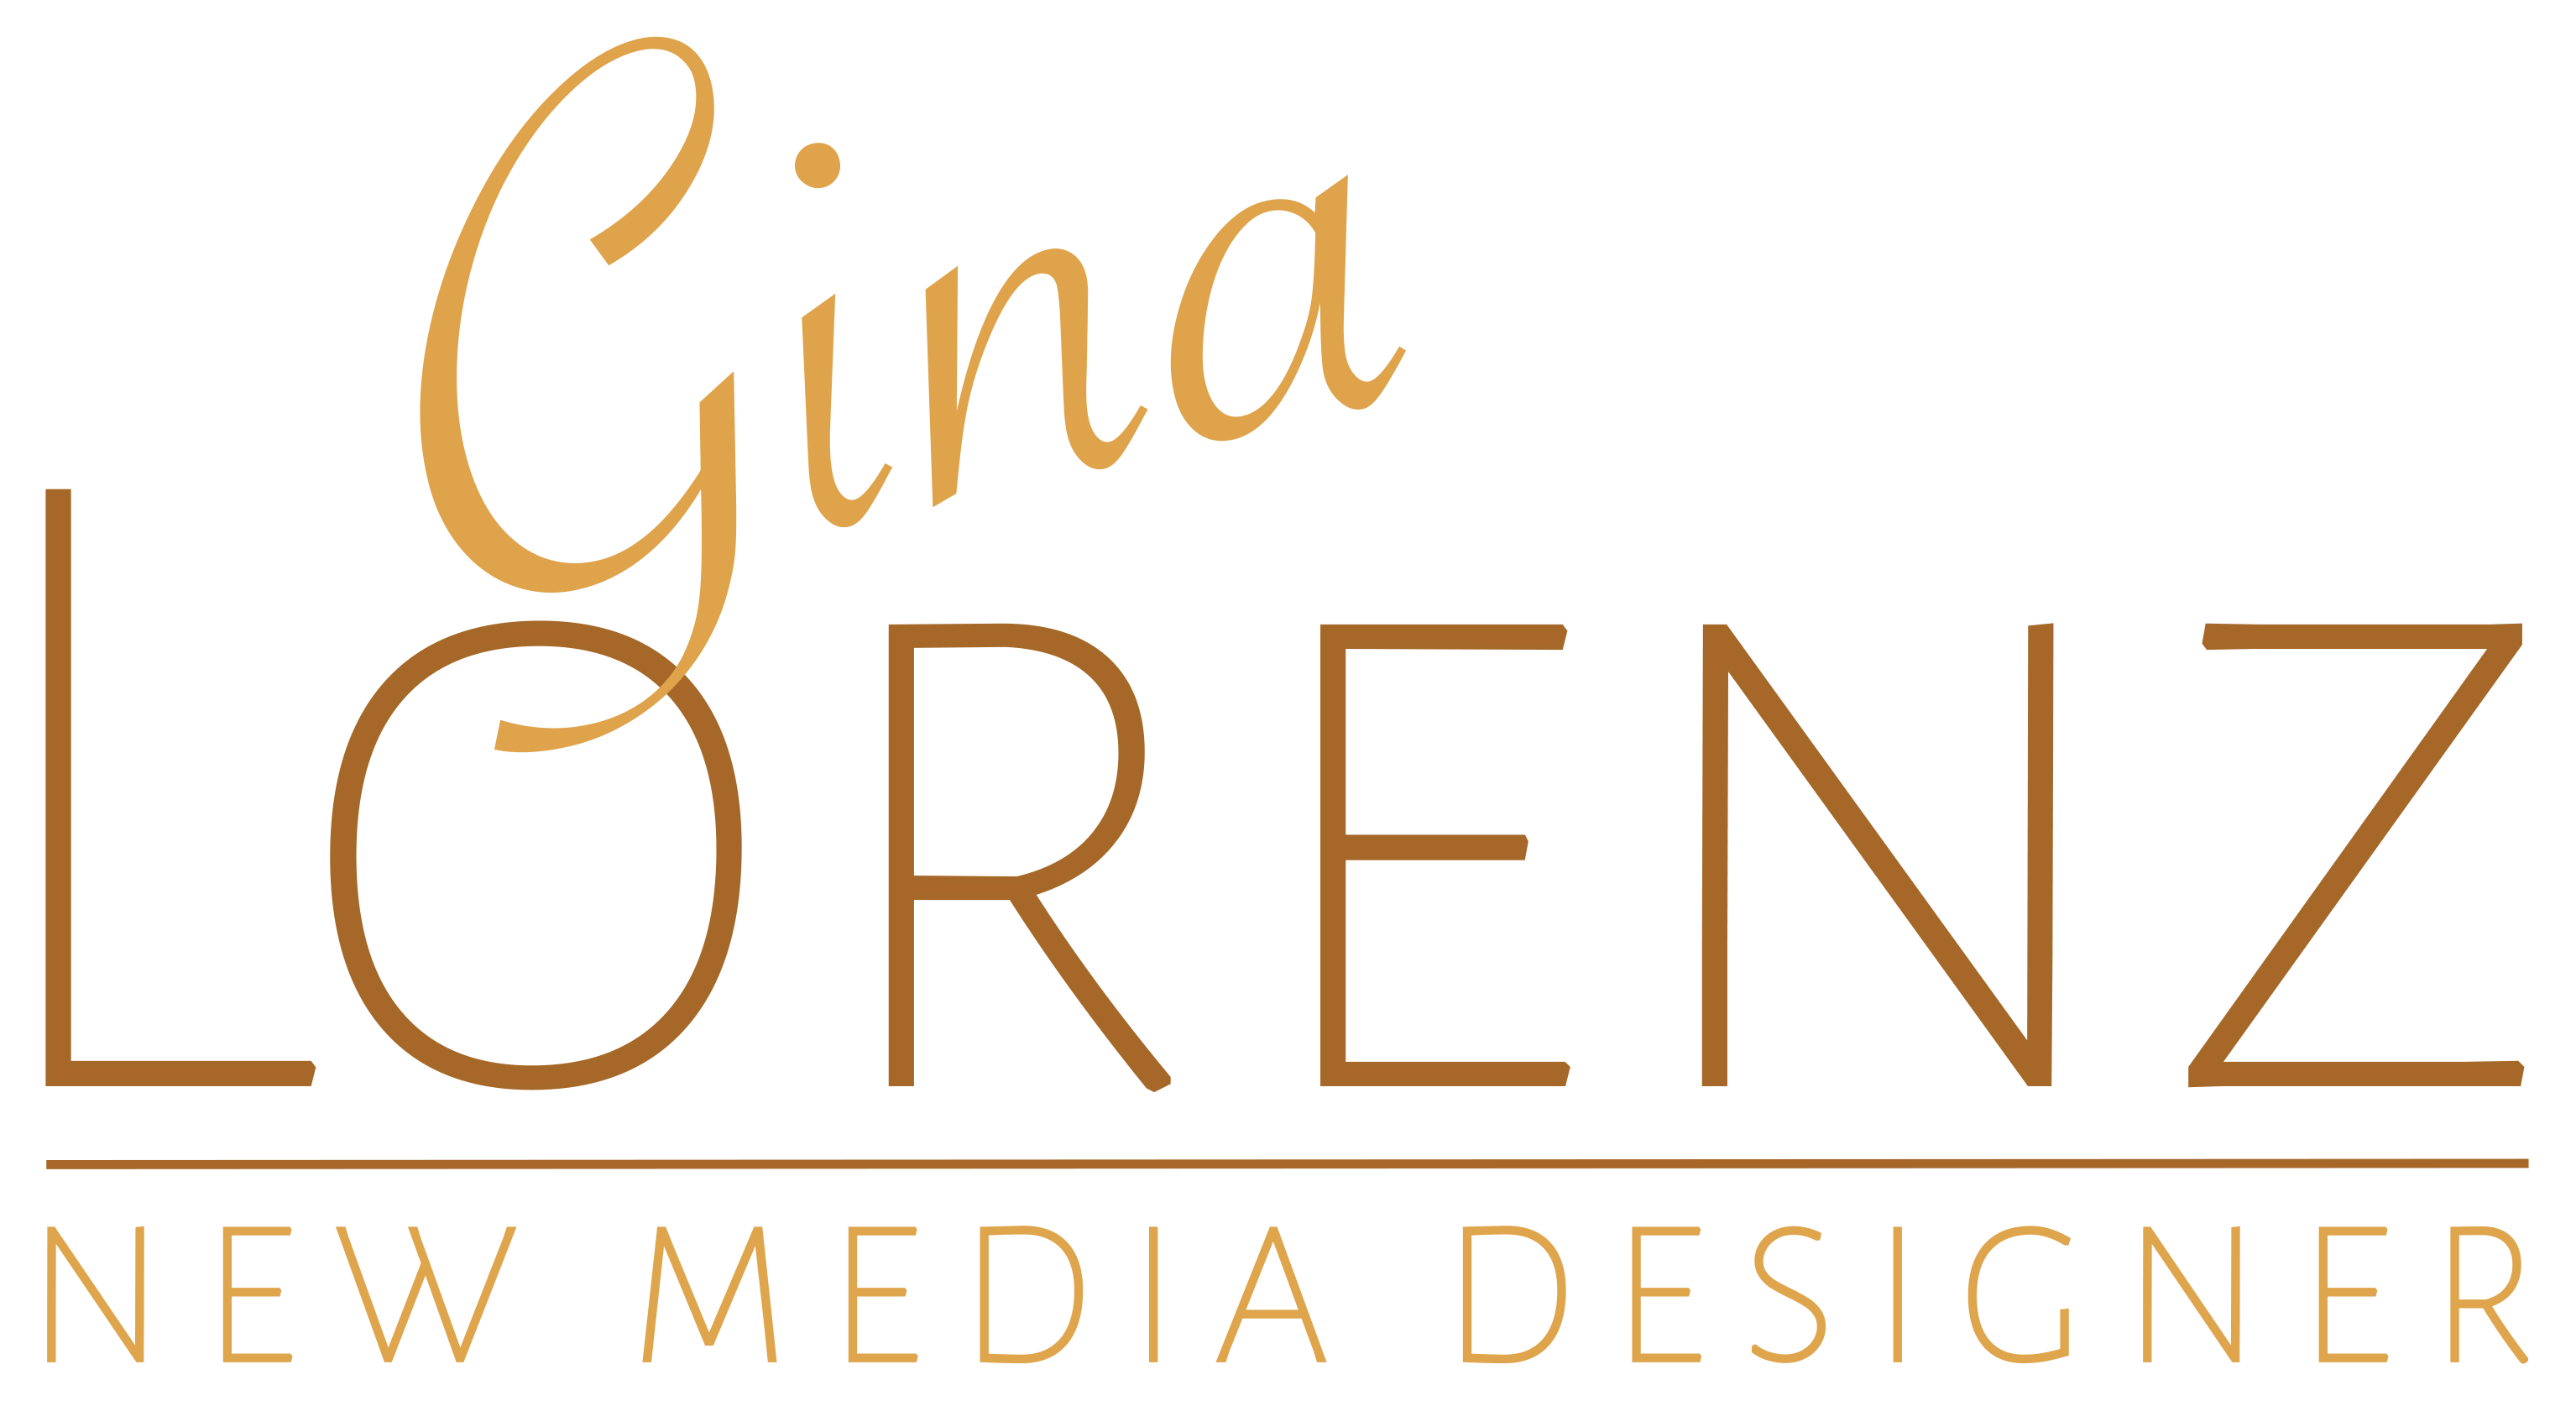 Gina Lorenz New Media Designer logo